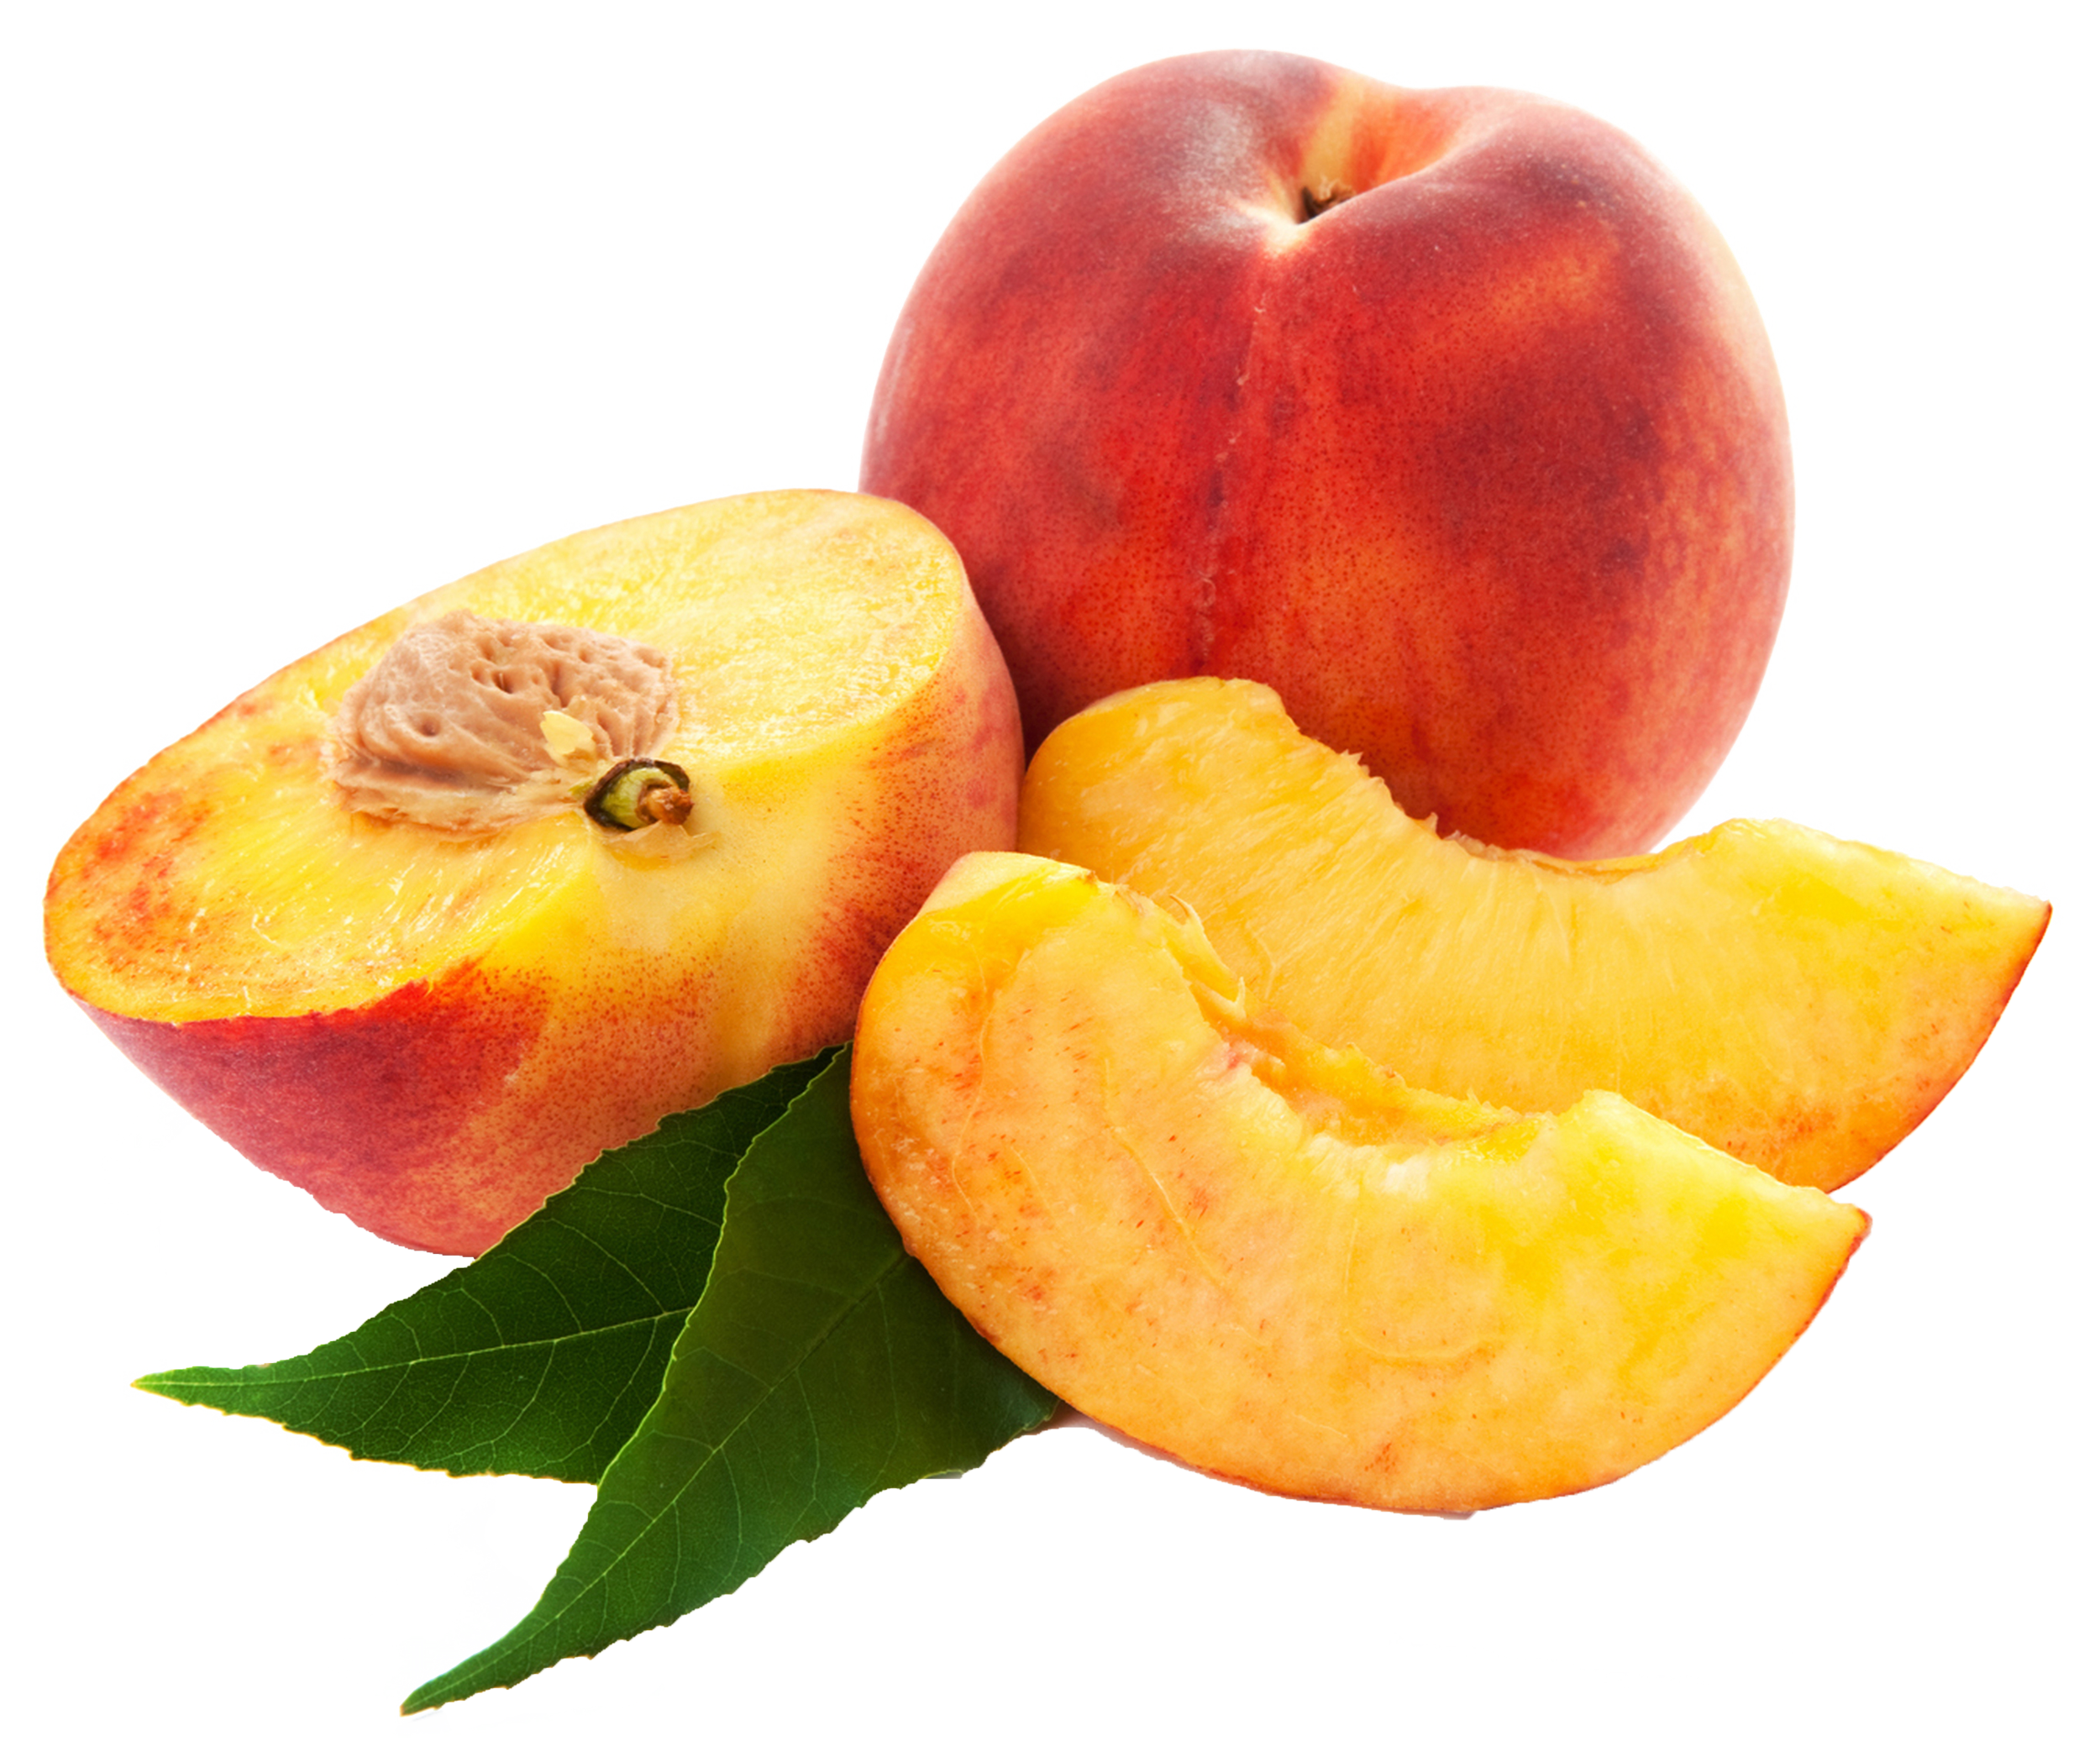 Peaches transparent. Peach clipart great free